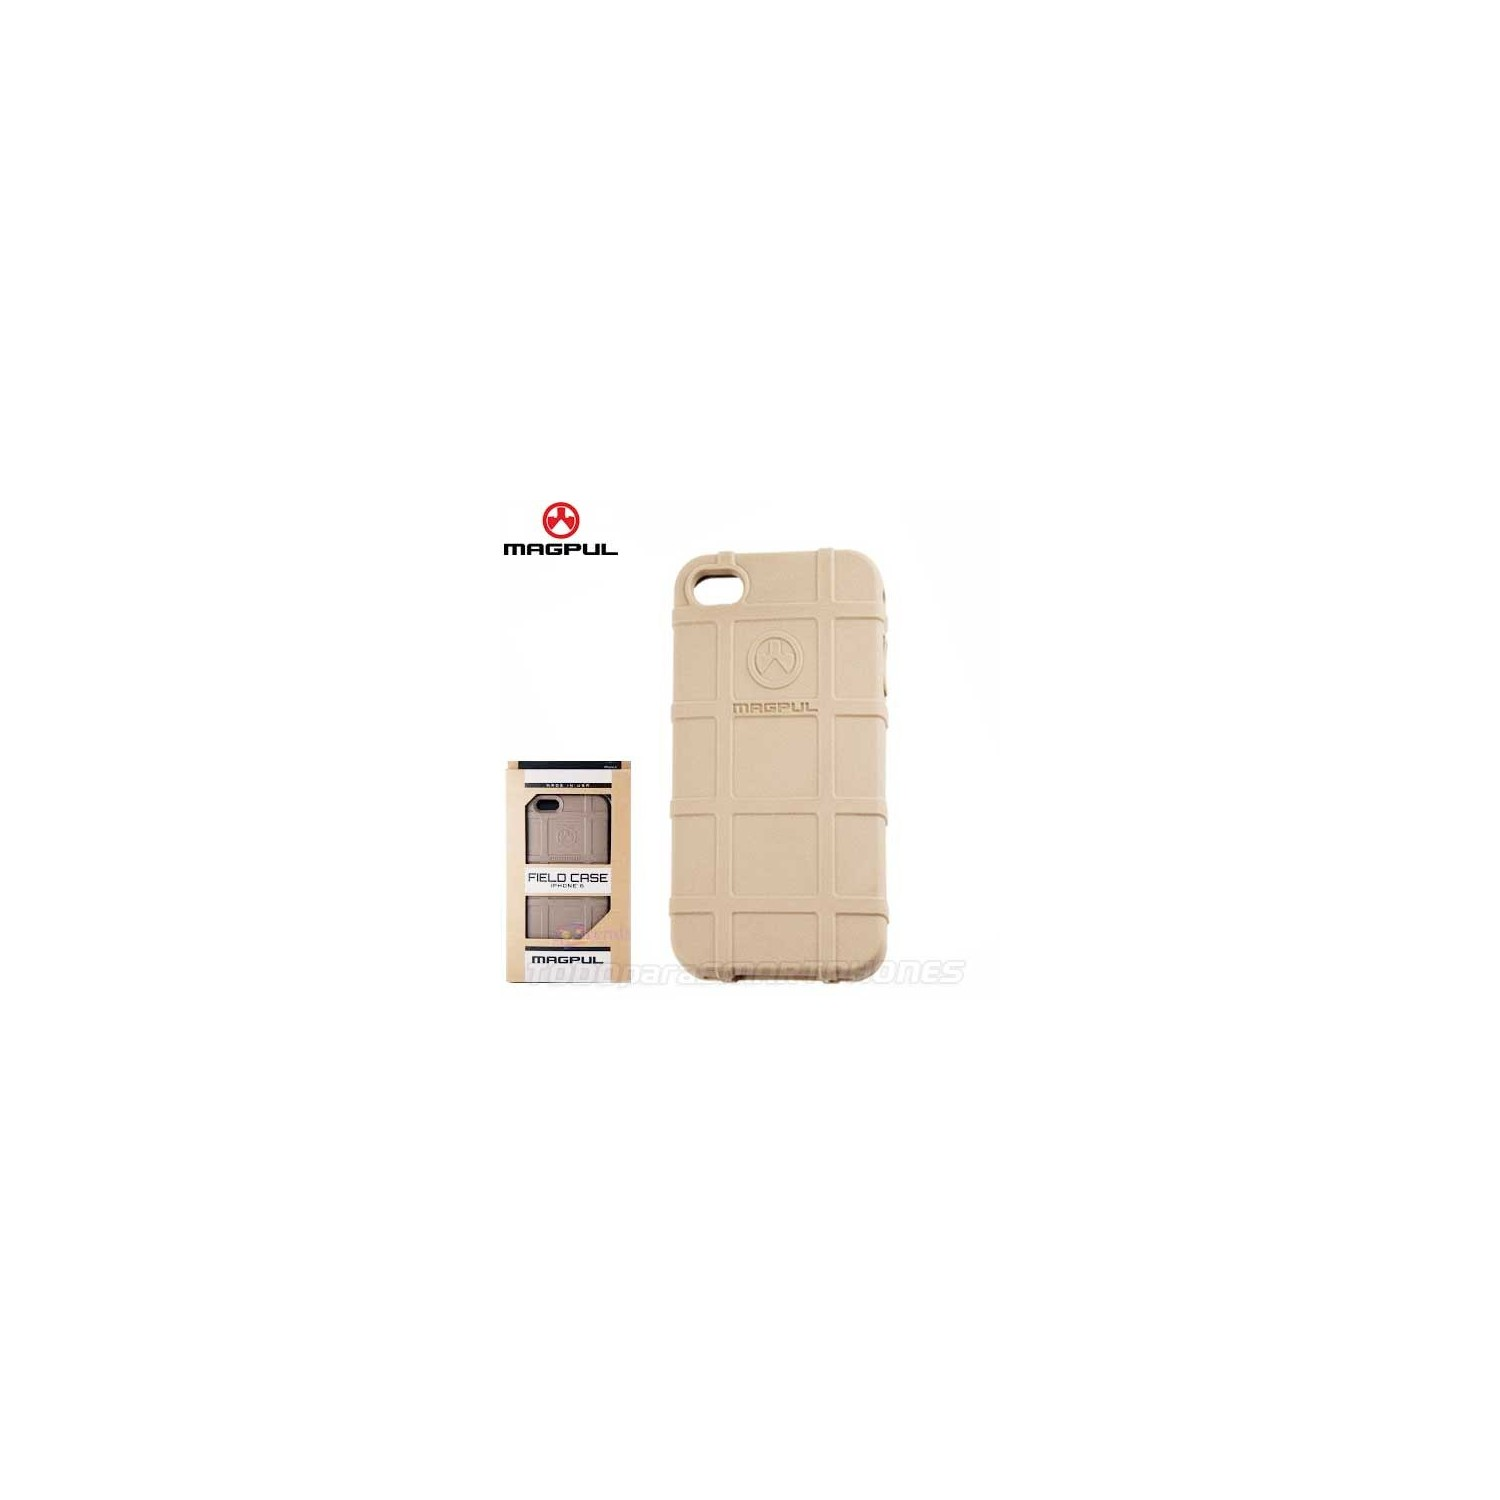 Case - Magpul field case for iPhone 6 Earth